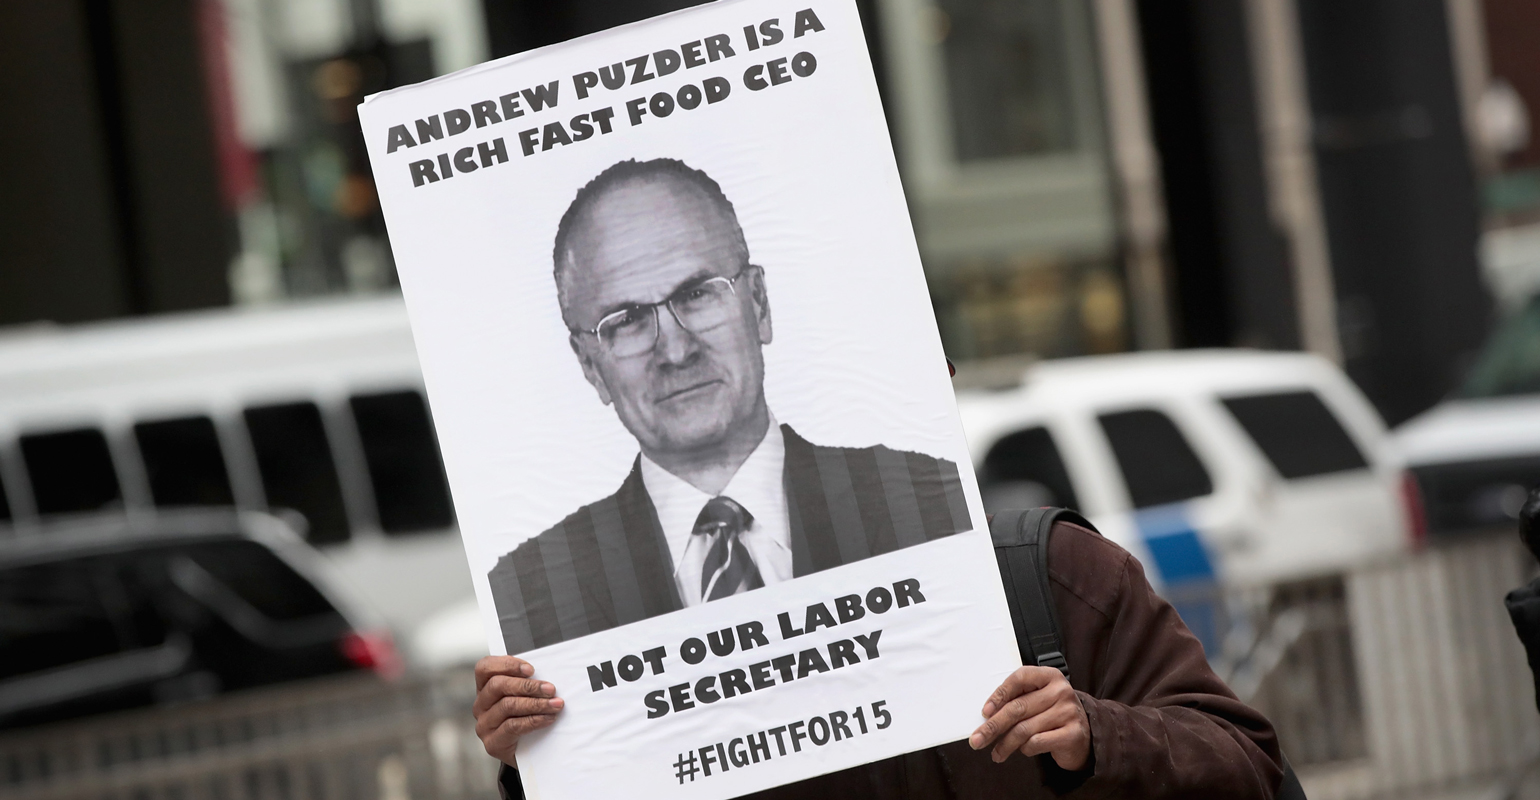 Labor groups amp up Andy Puzder protests | Nation\'s Restaurant News